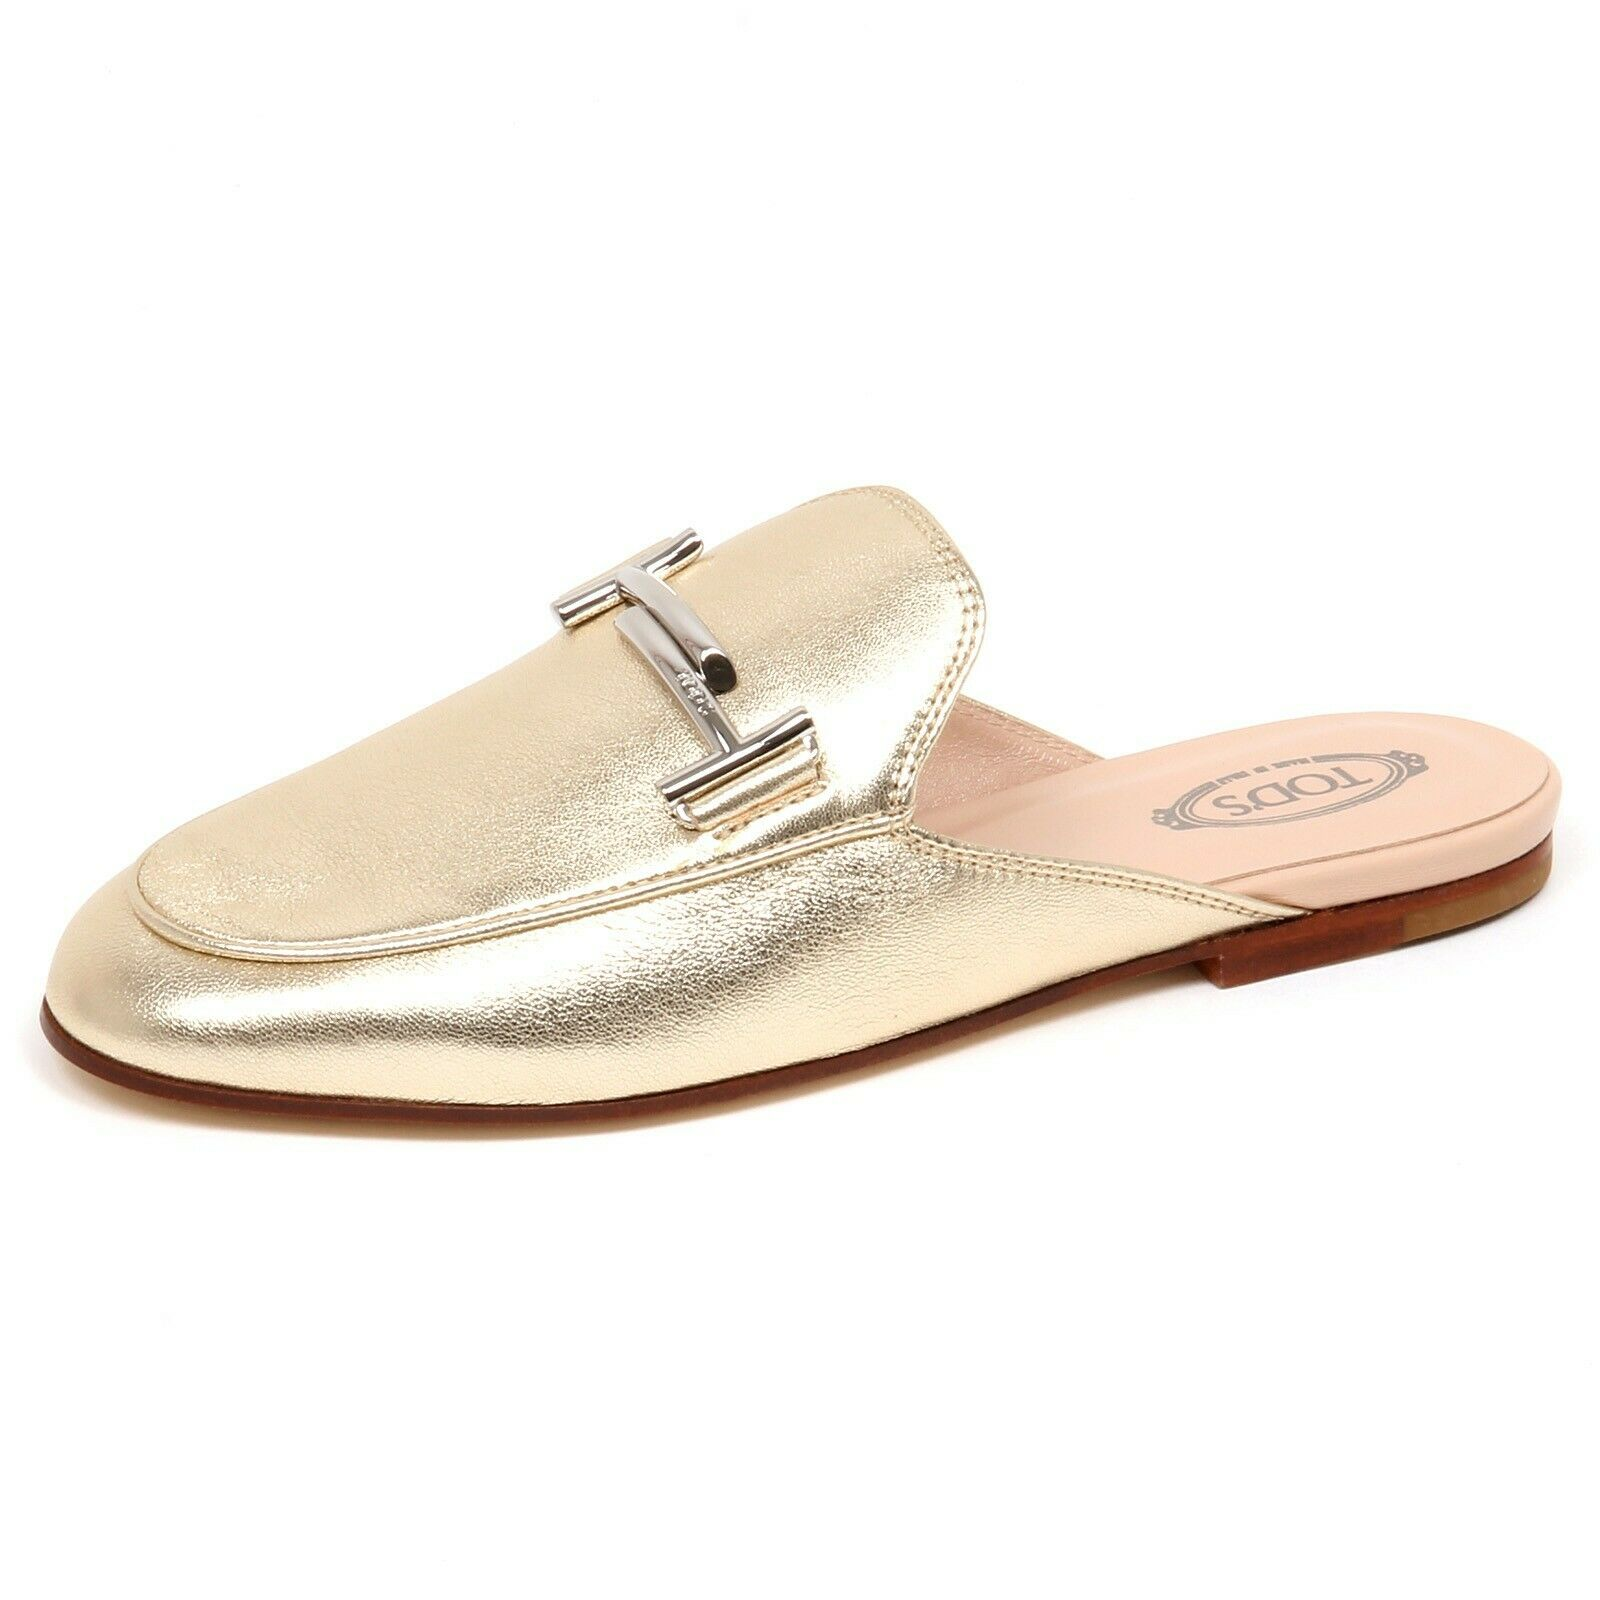 F3240 sabot mujer light oro Tod's zapatos doppia t loafer zapatos Woman